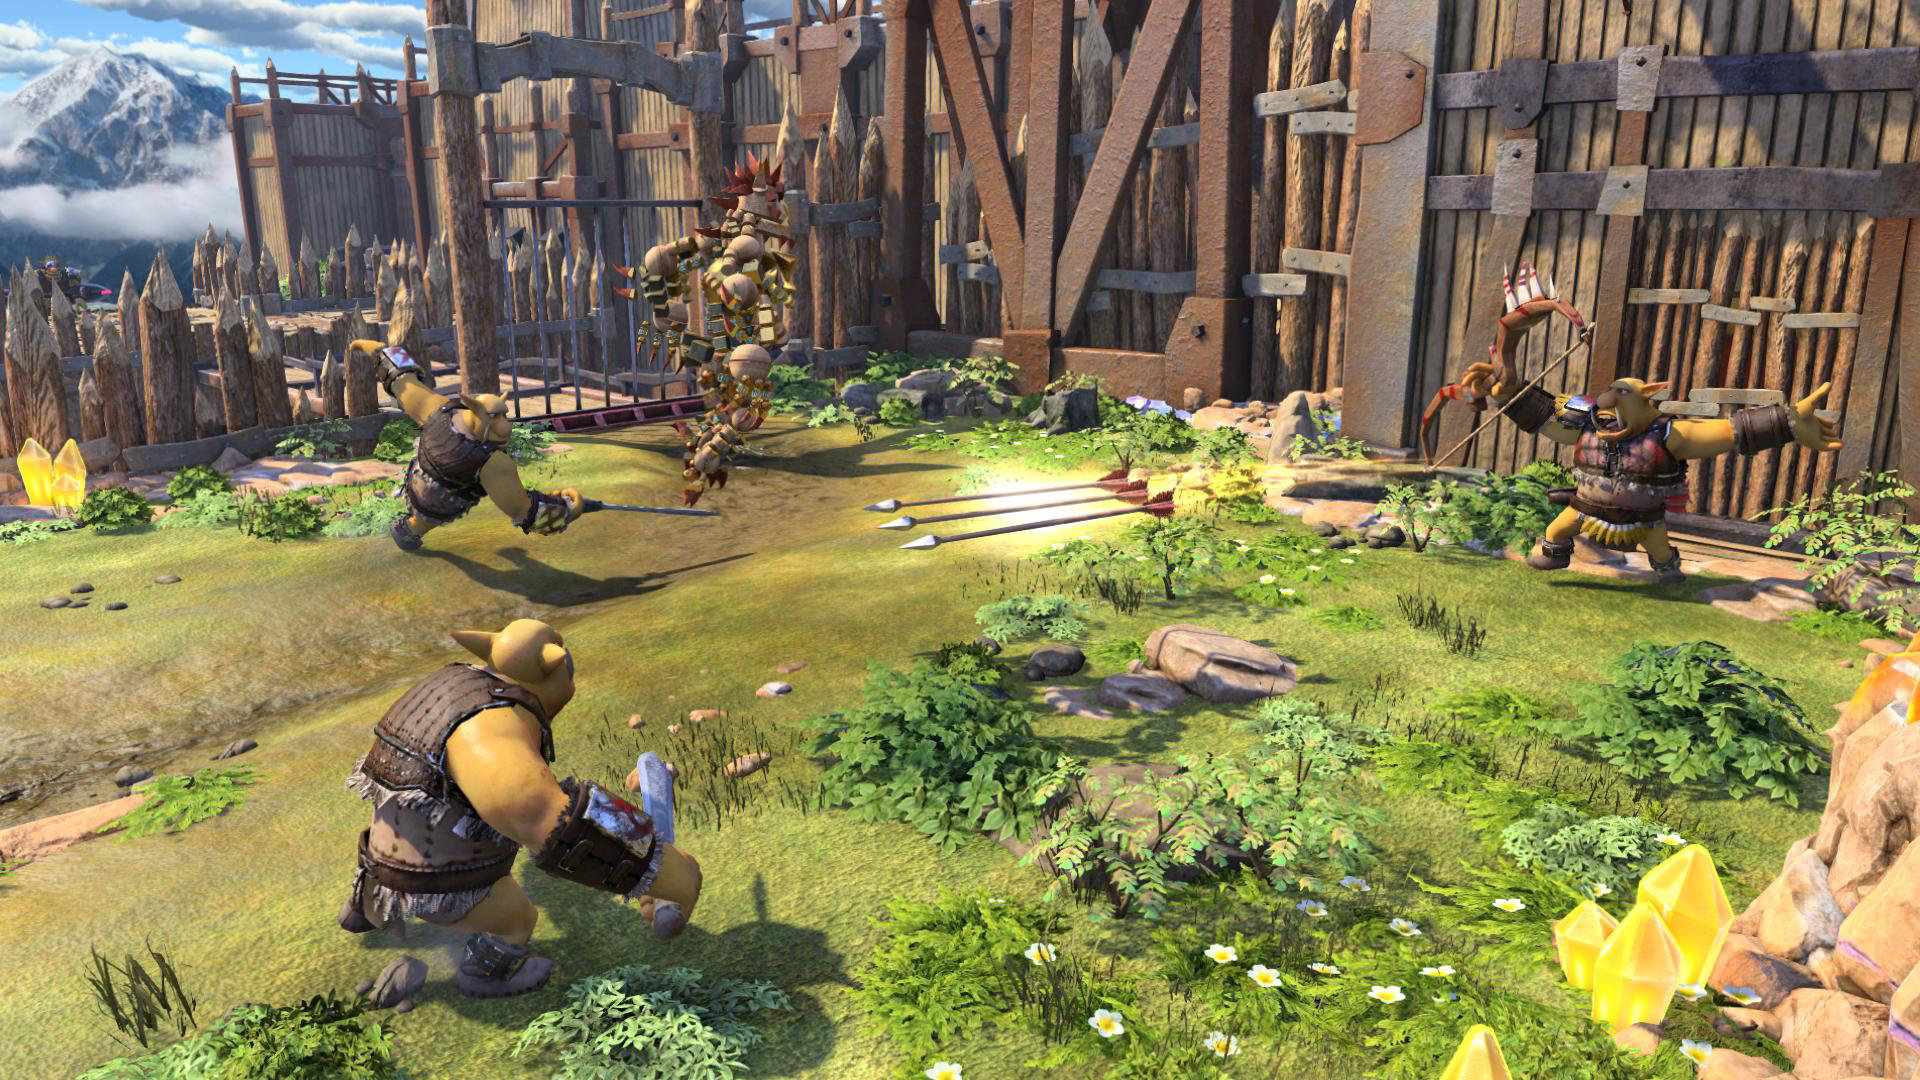 knack-screen-18-eu-20mar14?$MediaCarouse